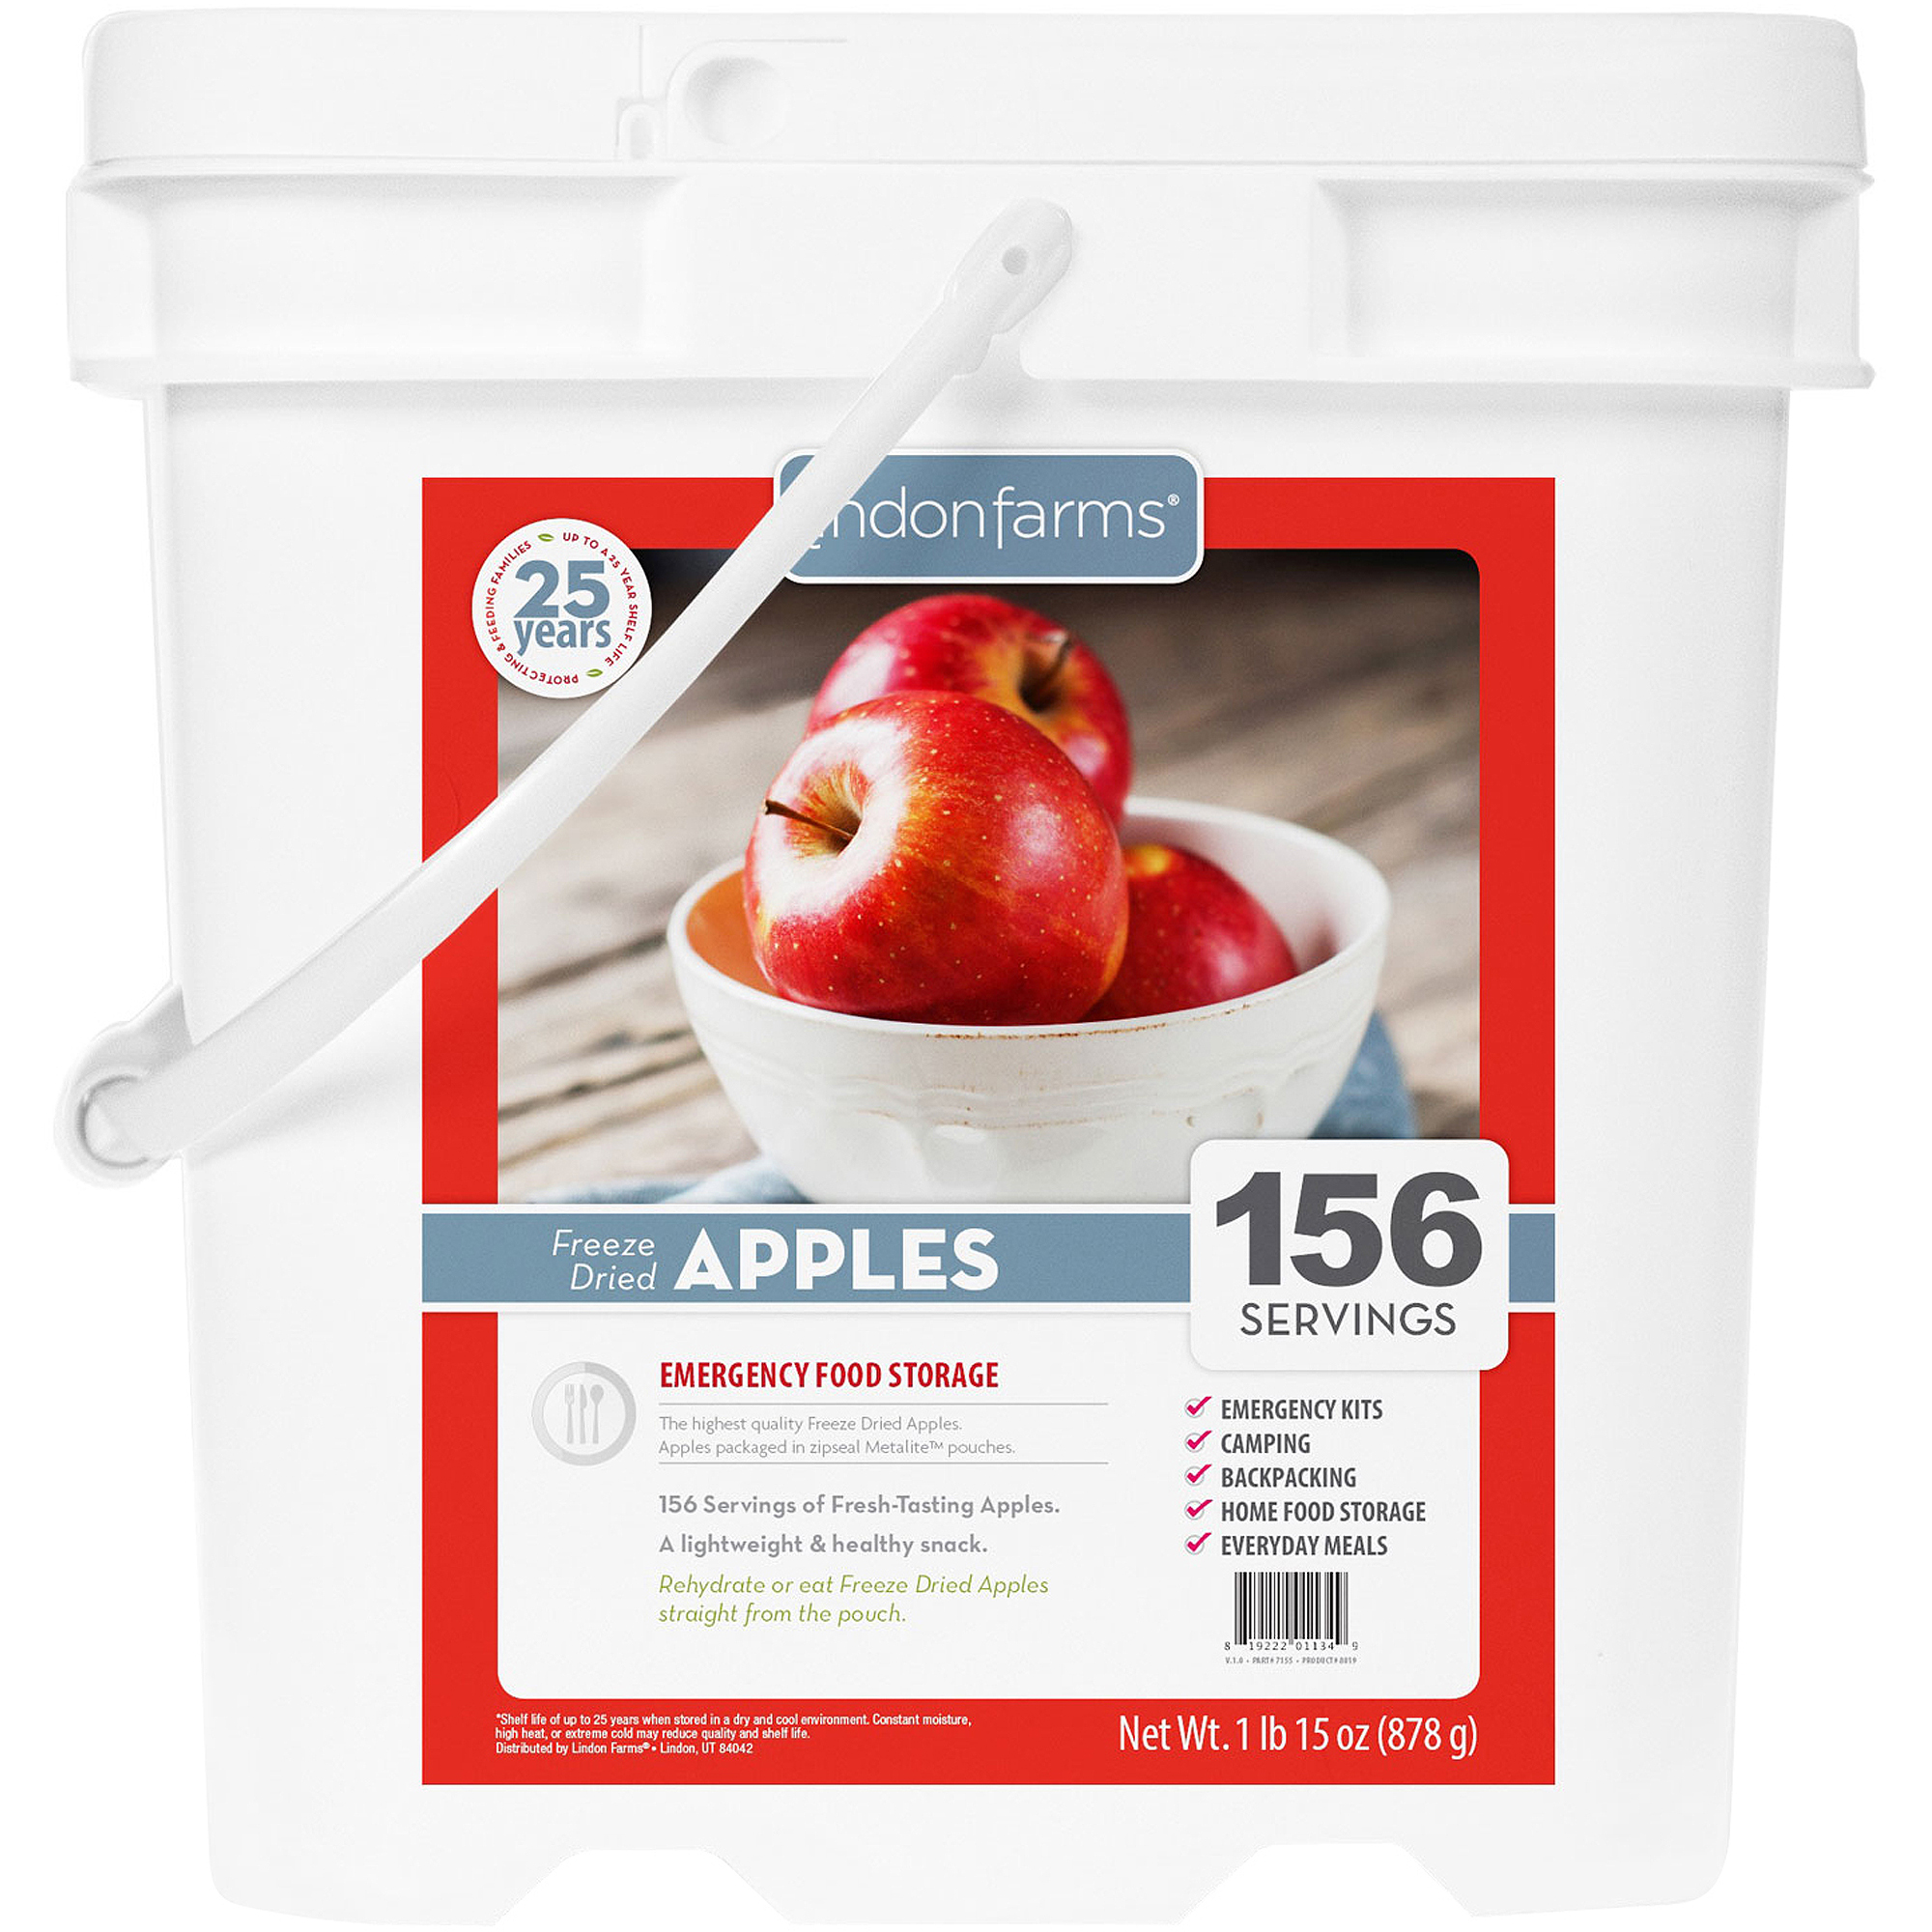 Lindon Farms 156 Servings Freeze Dried Apples by Lindon Farms